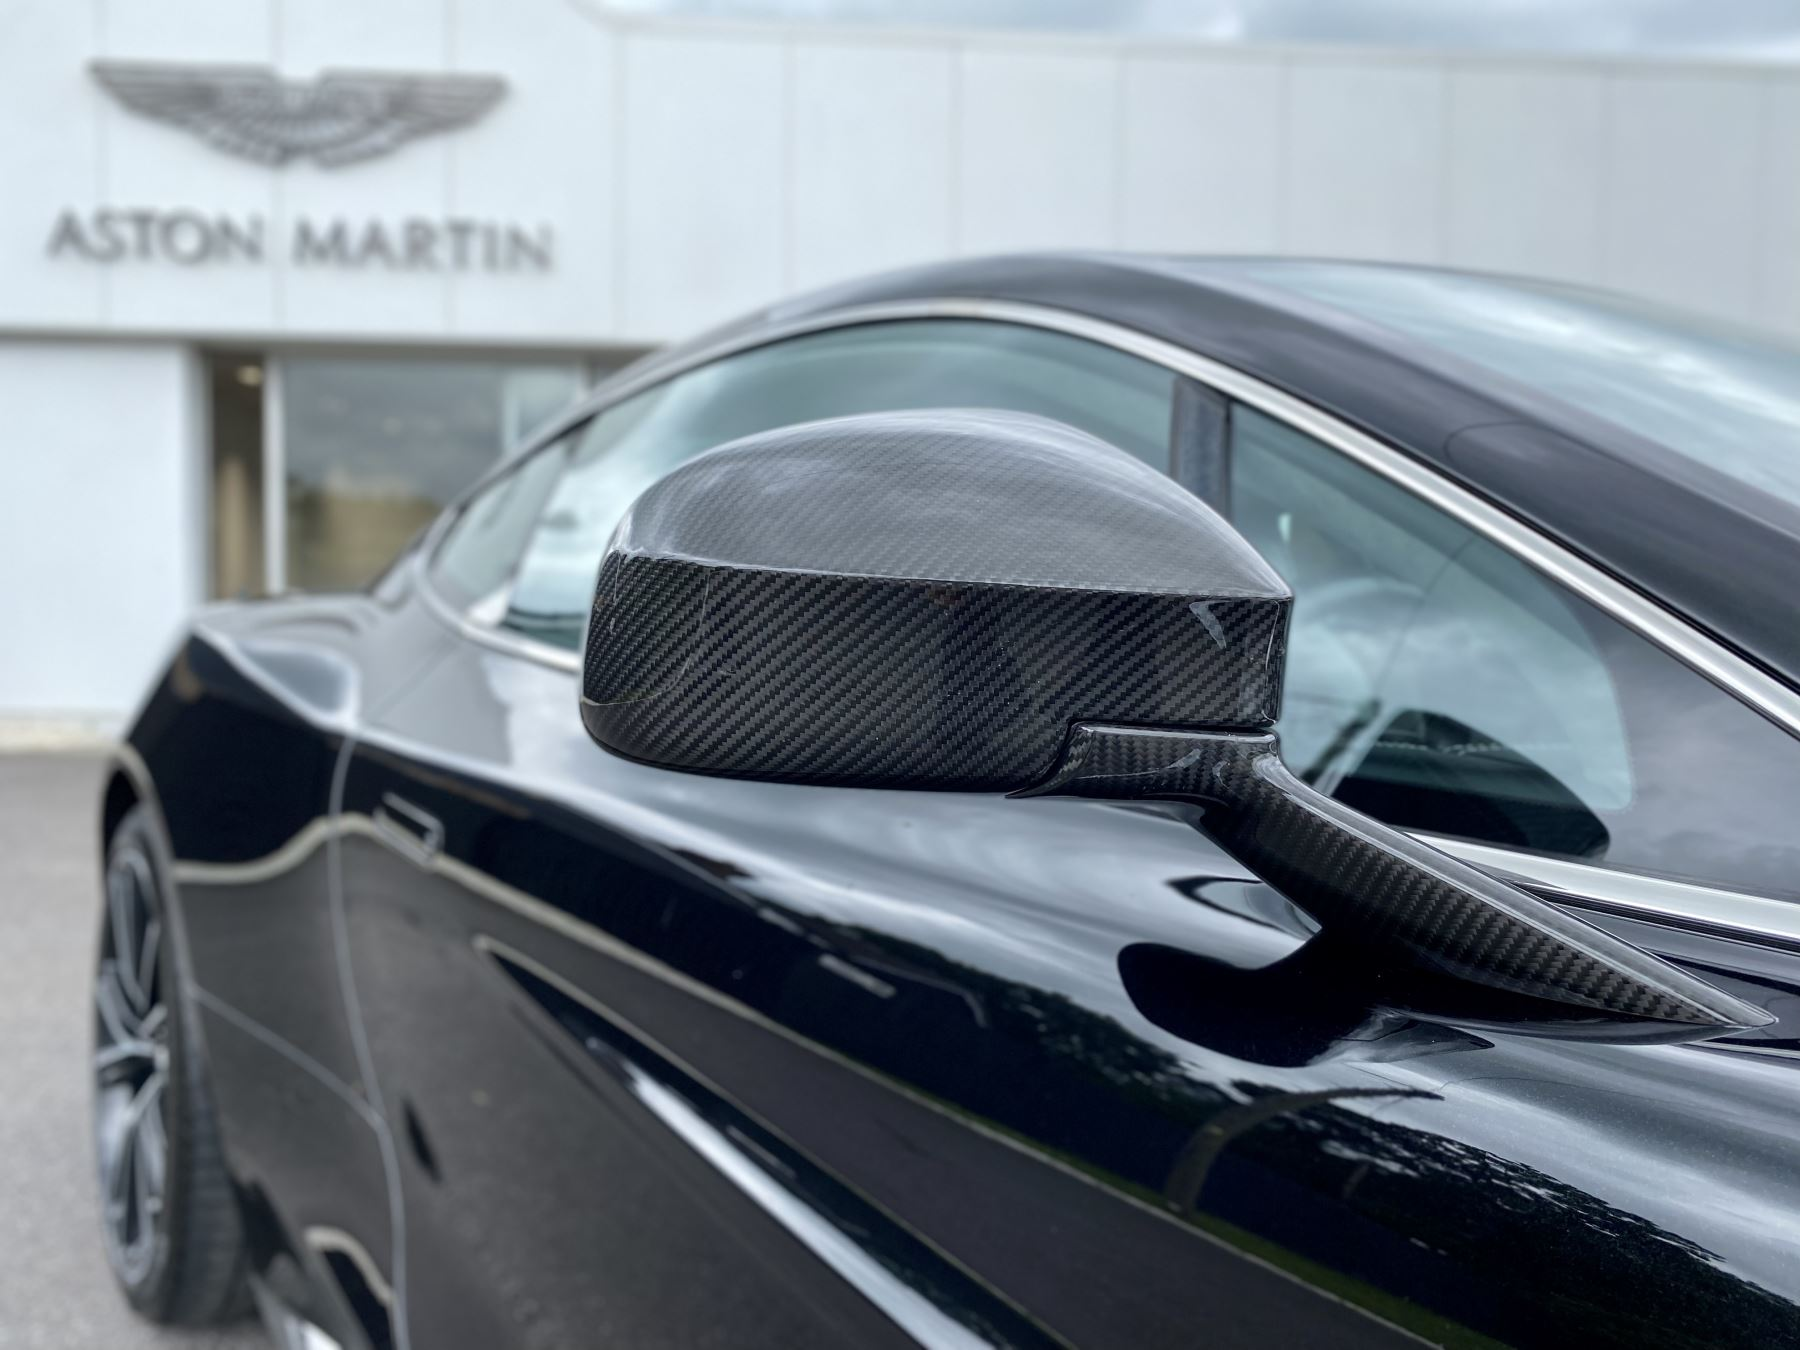 Aston Martin Vanquish V12 [568] 2+2 2dr Touchtronic 3 8 Speed, 2 Owners From New, Onyx Black, Bang And Olufsen. image 15